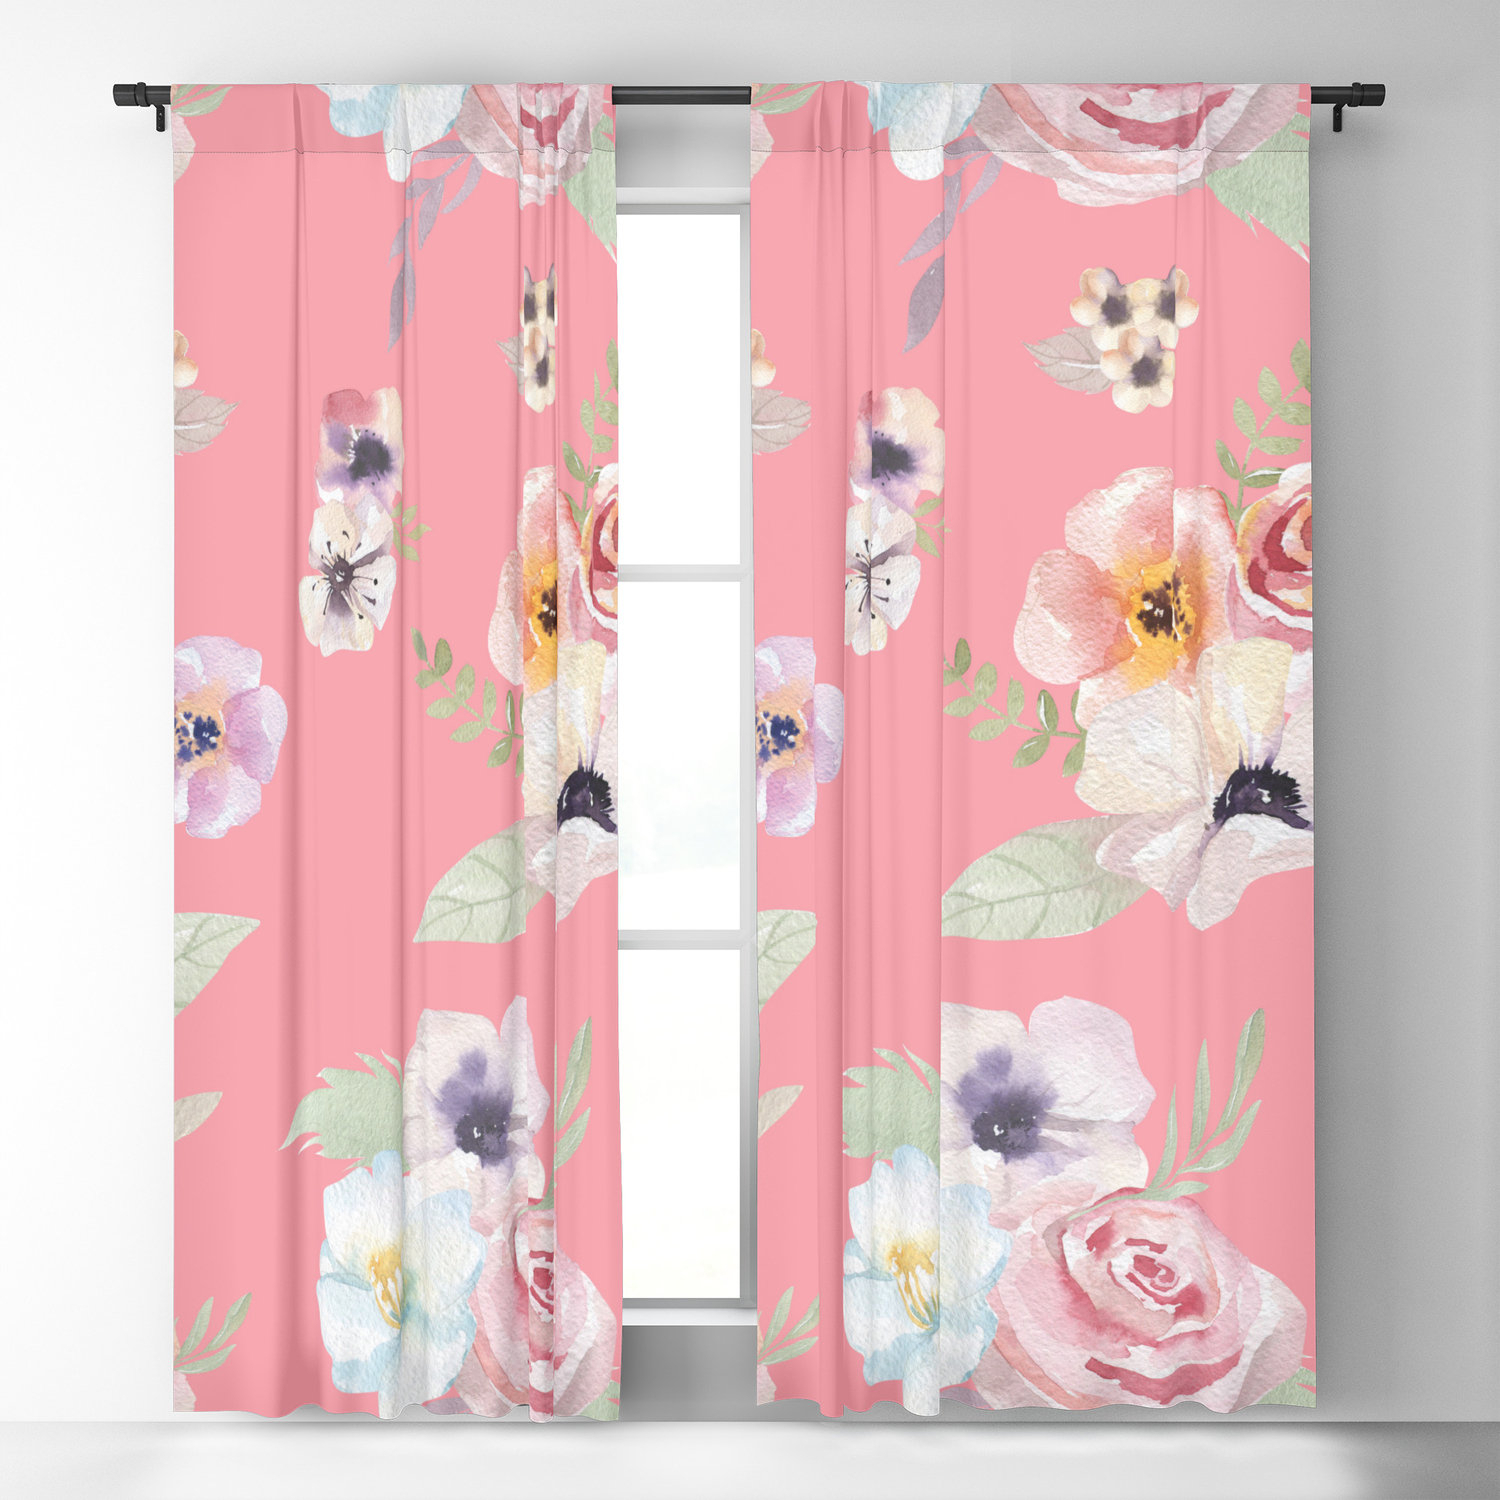 Window Curtains – Watercolor Floral I – Bright Pink – 50 X 84 Or With Regard To Andorra Watercolor Floral Textured Sheer Single Curtain Panels (View 15 of 20)